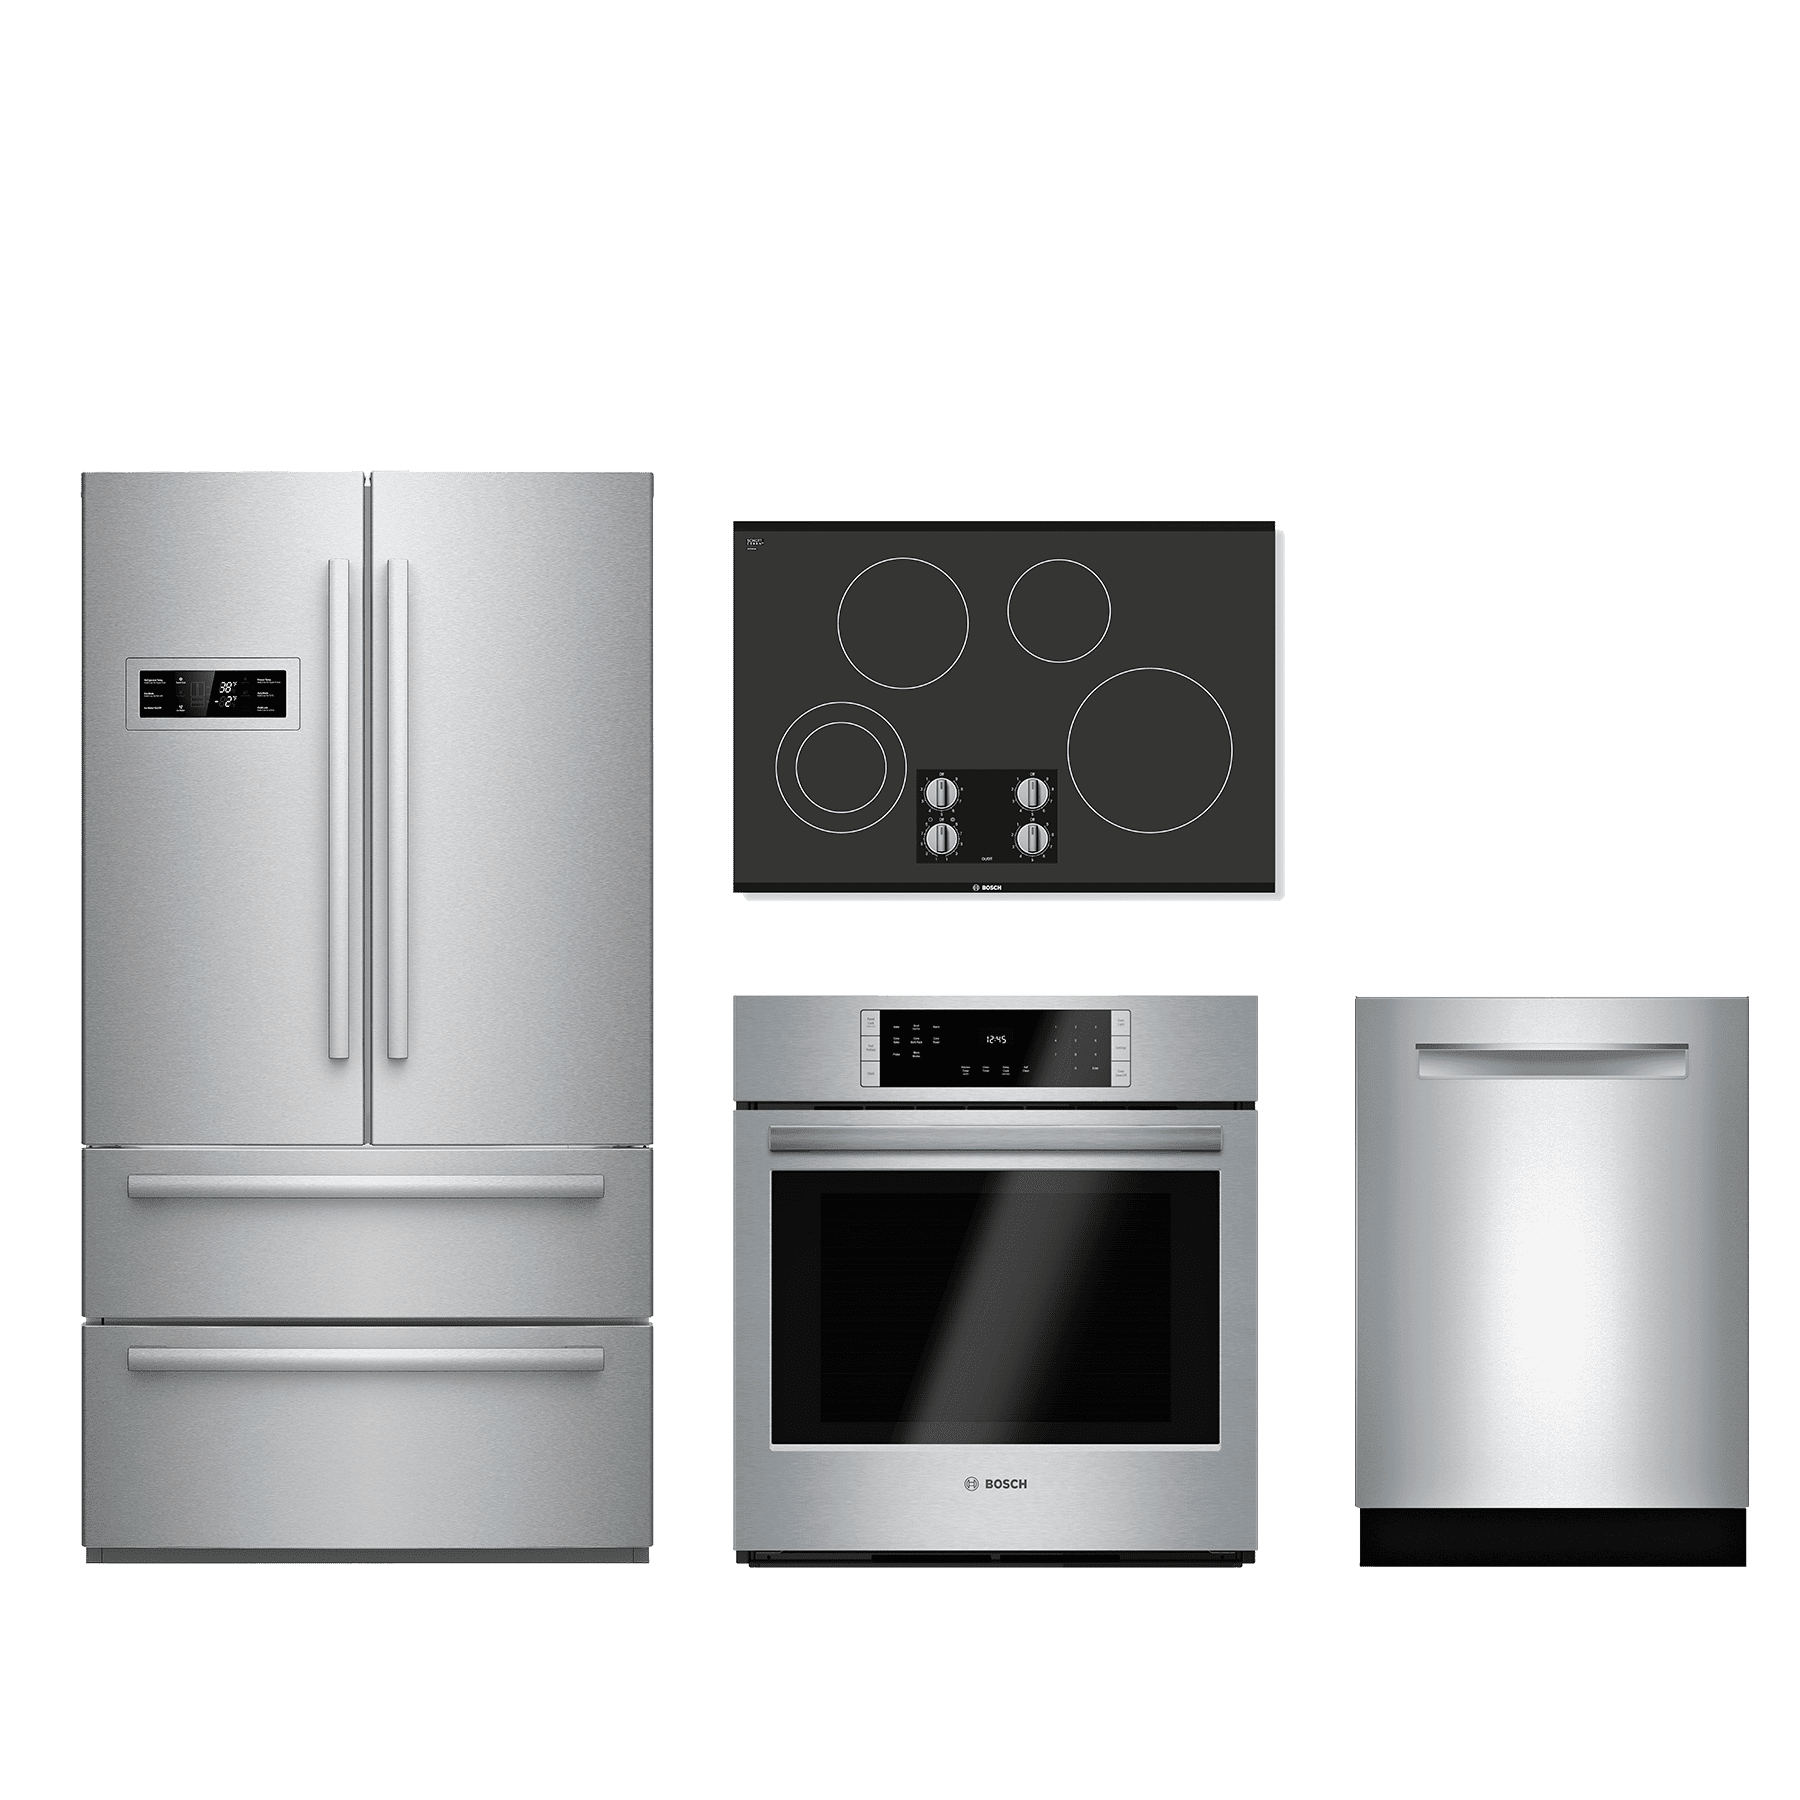 appliance sears stainless deals ideas kitchen bundles excellent packages bundle costco steel quickly a package